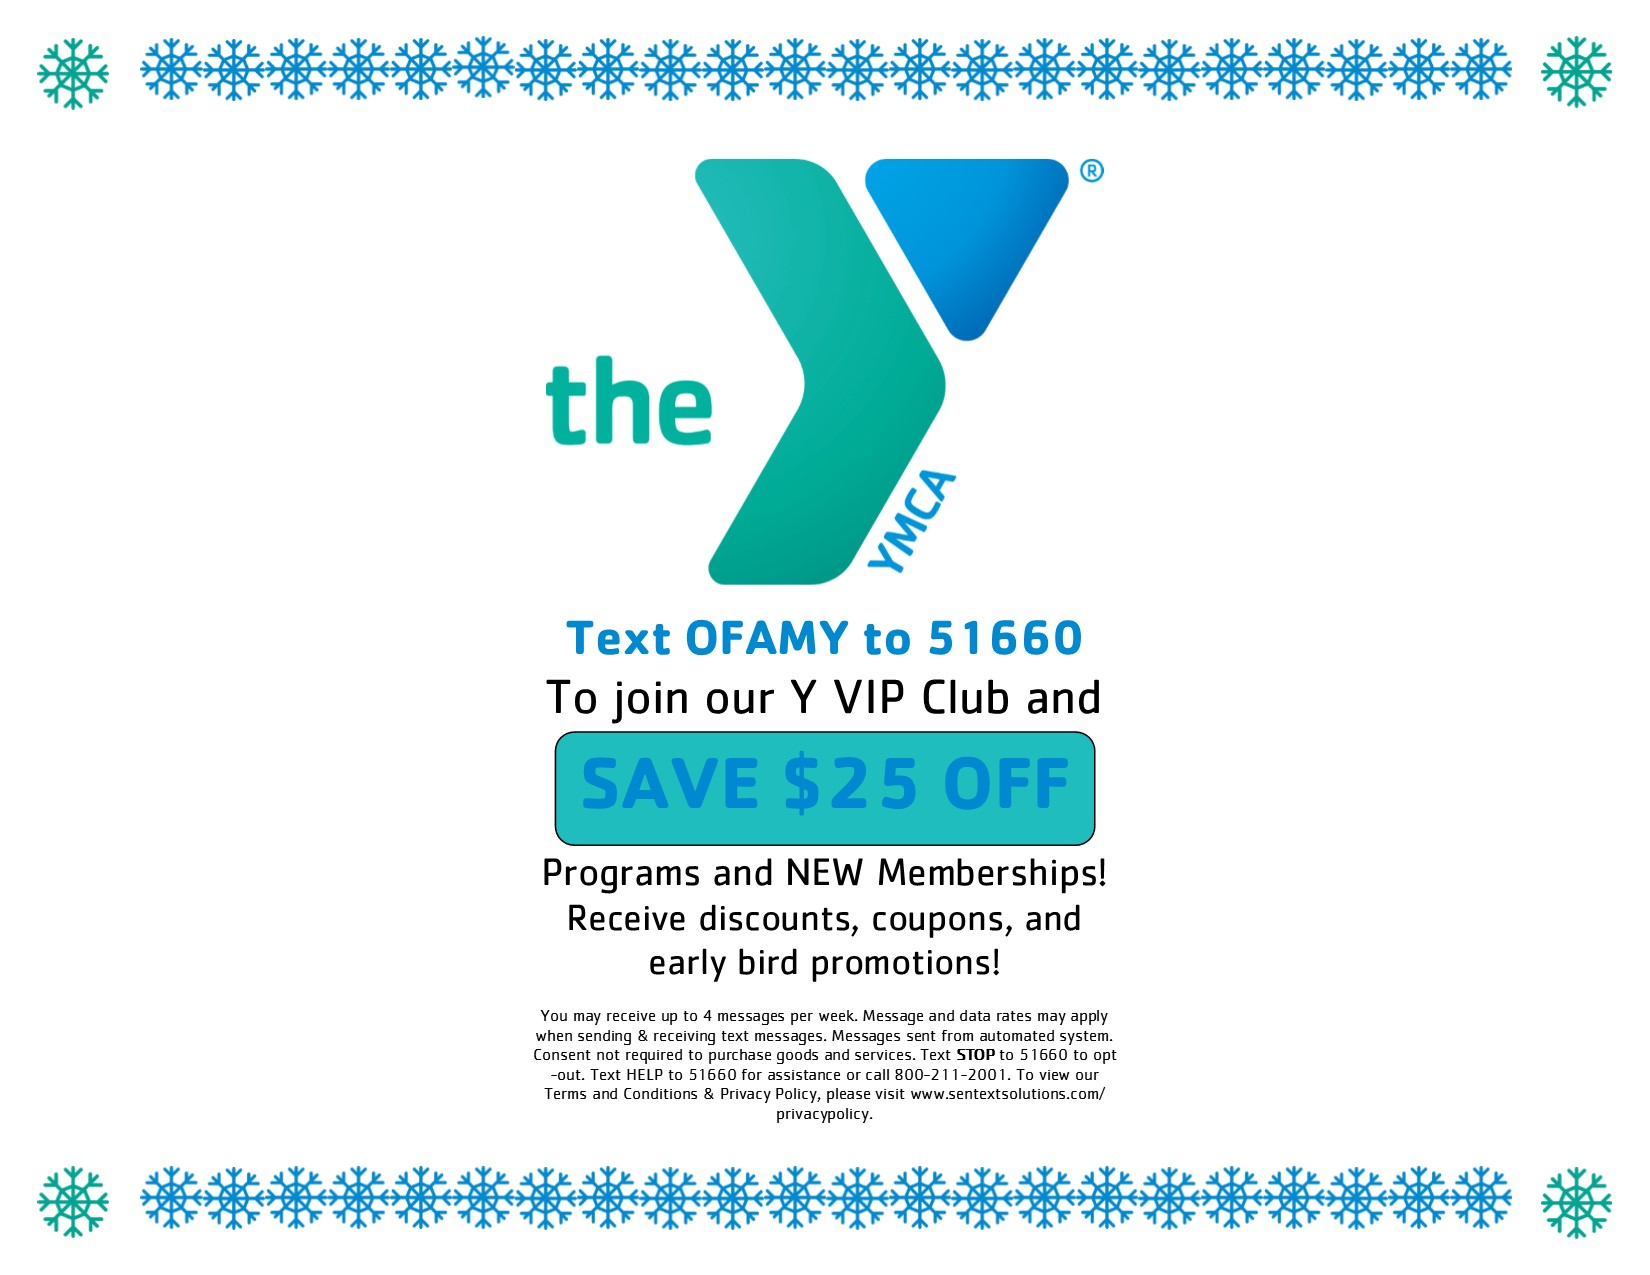 TEXT OFAMY TO 51660